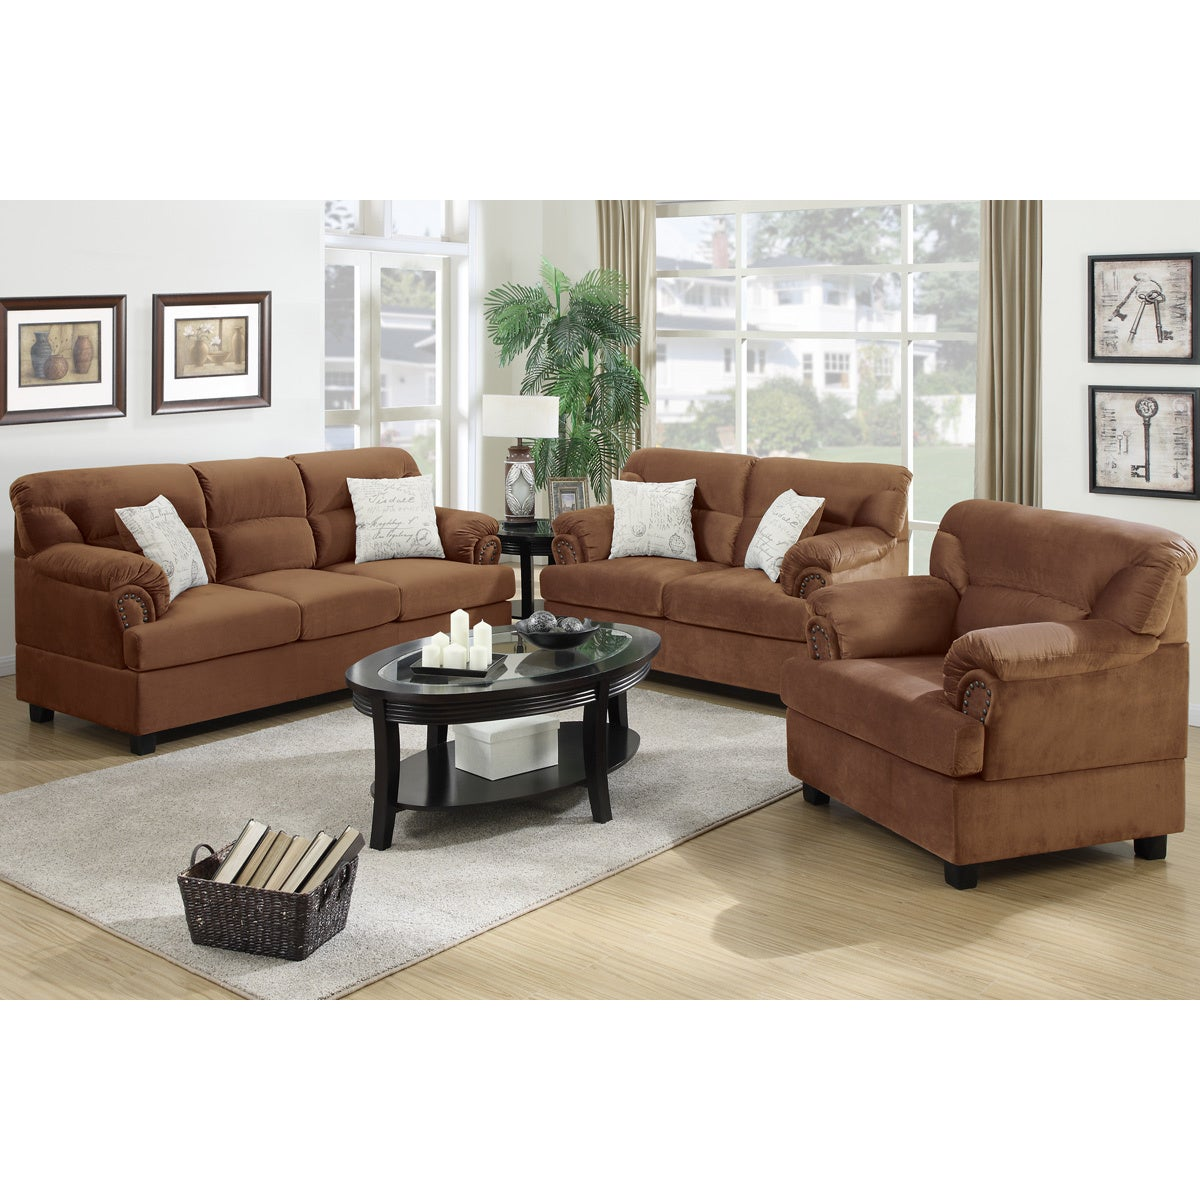 Shop junik 3 piece living room set in microfiber free shipping today overstock com 9991763